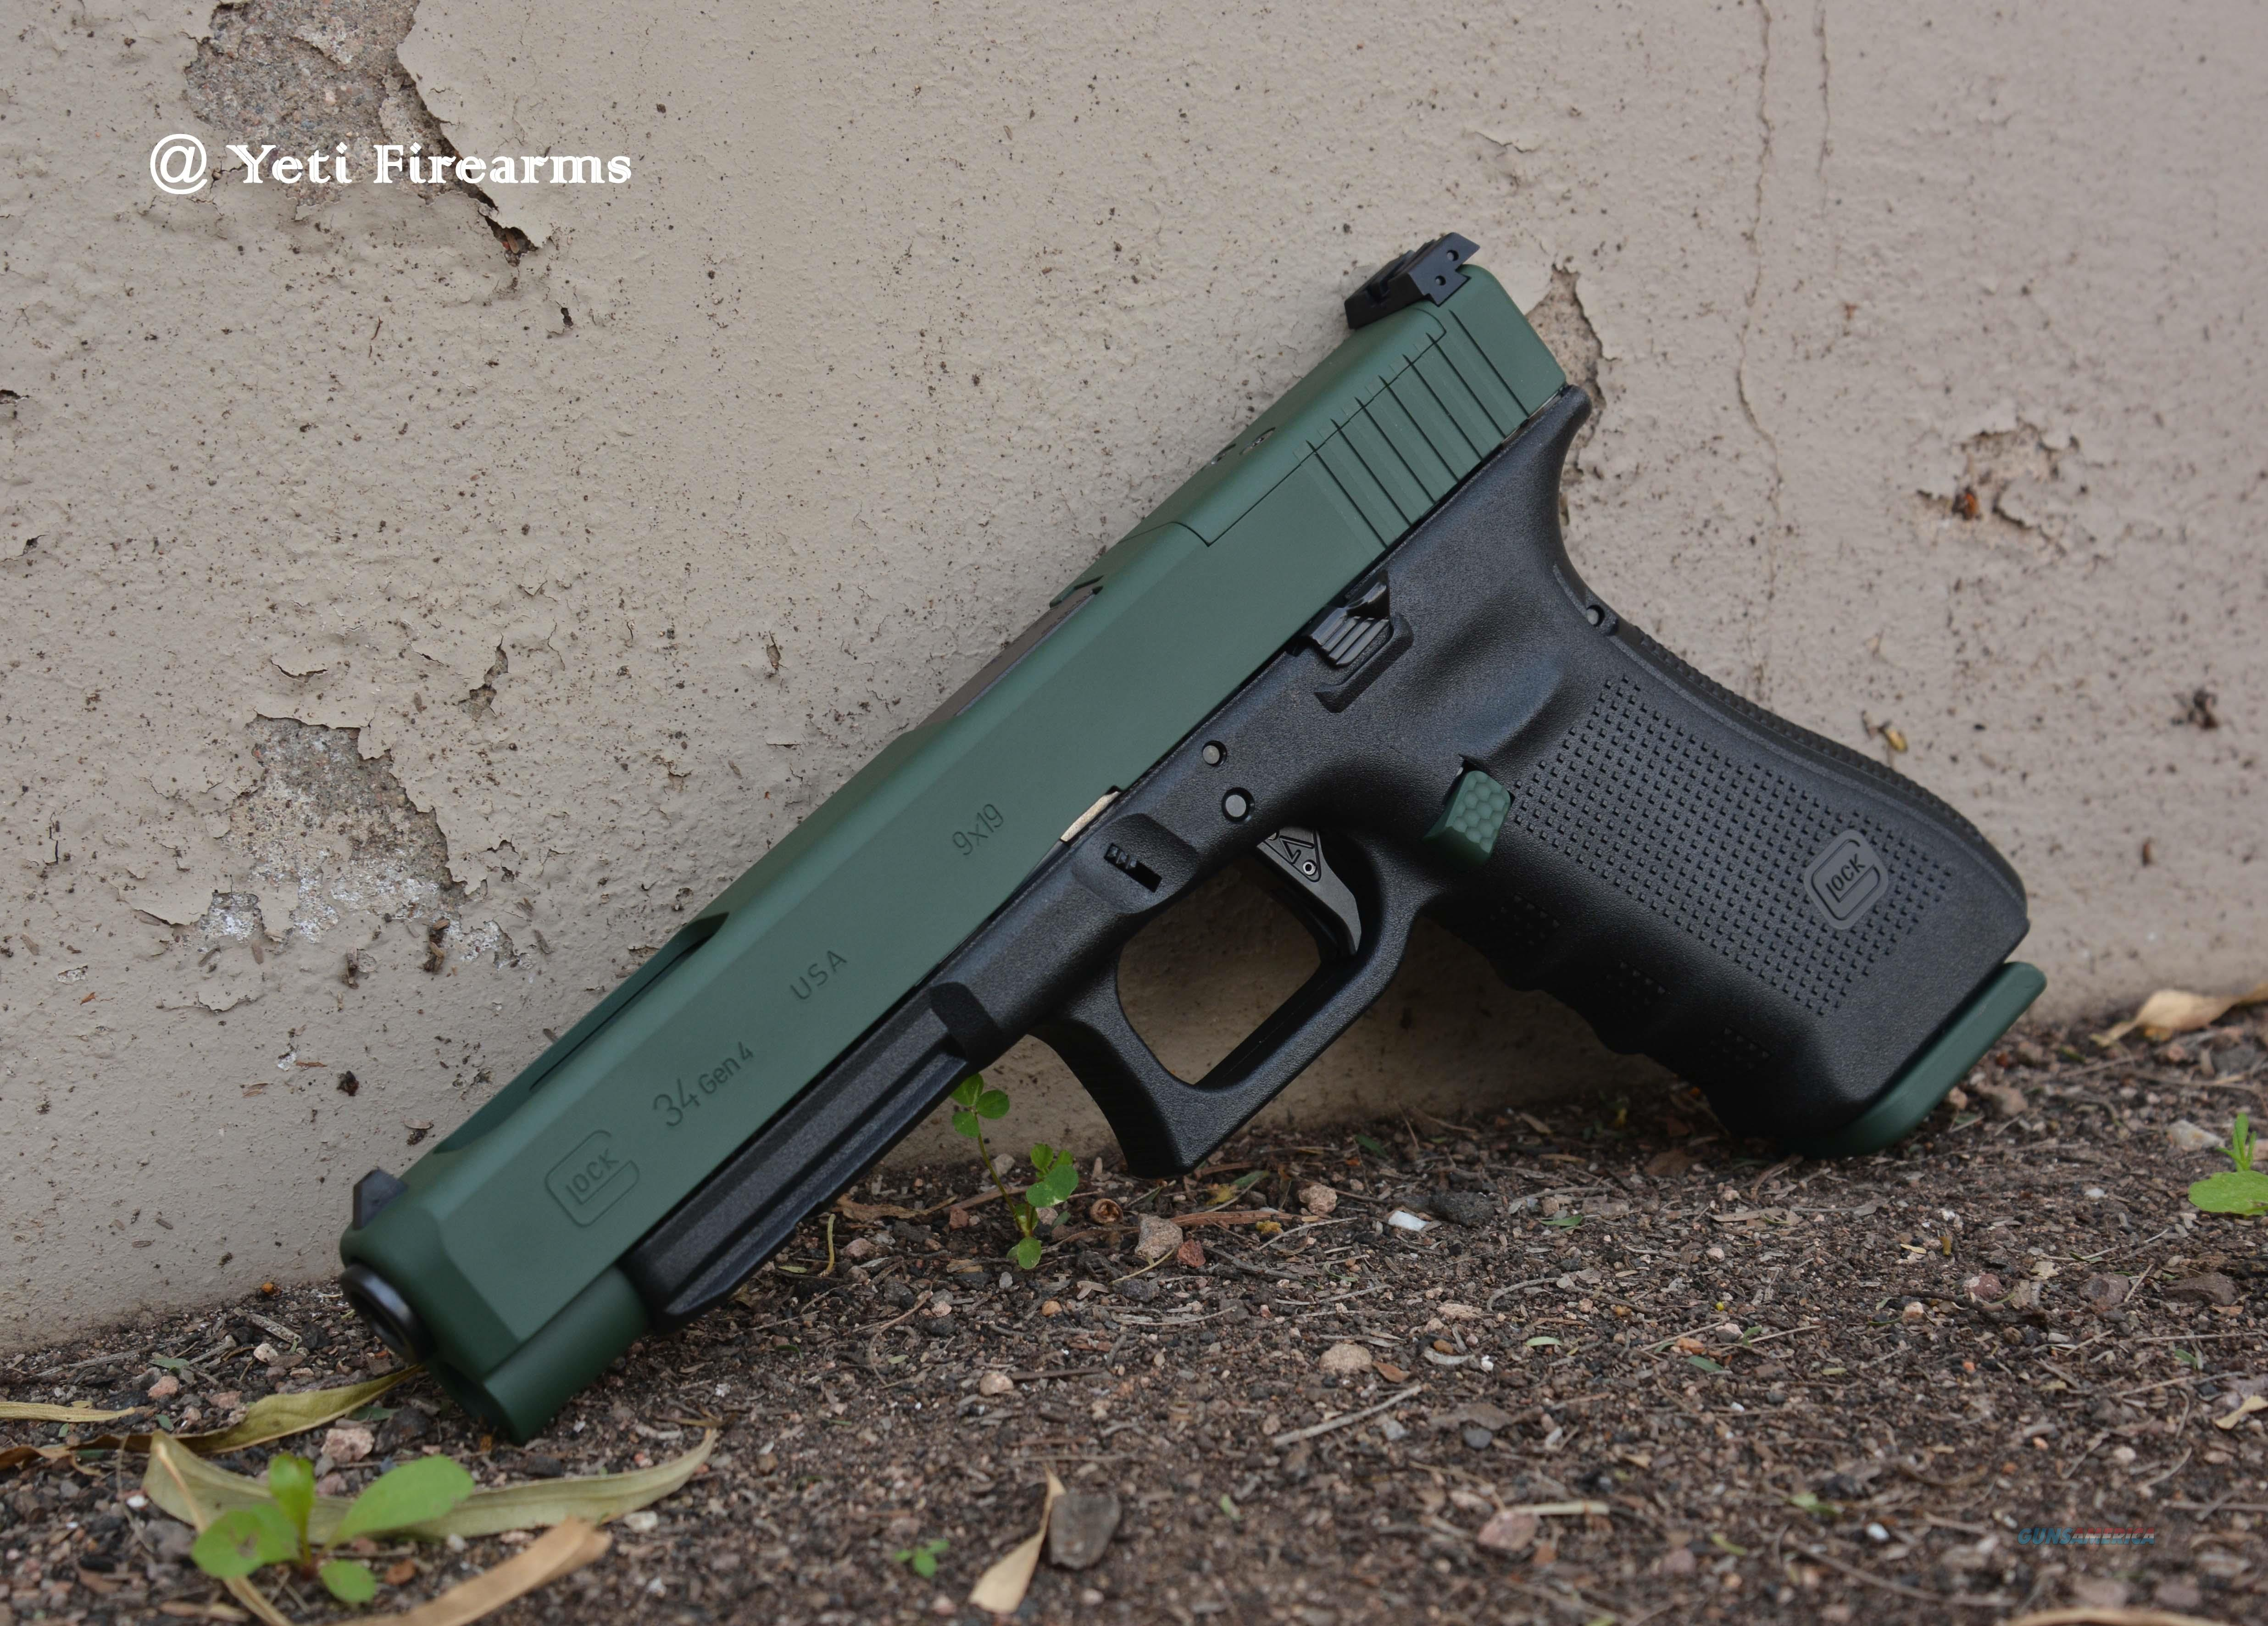 X Werks 2 Ton Green Glock 34 G4 Mos 9mm Agency For Sale